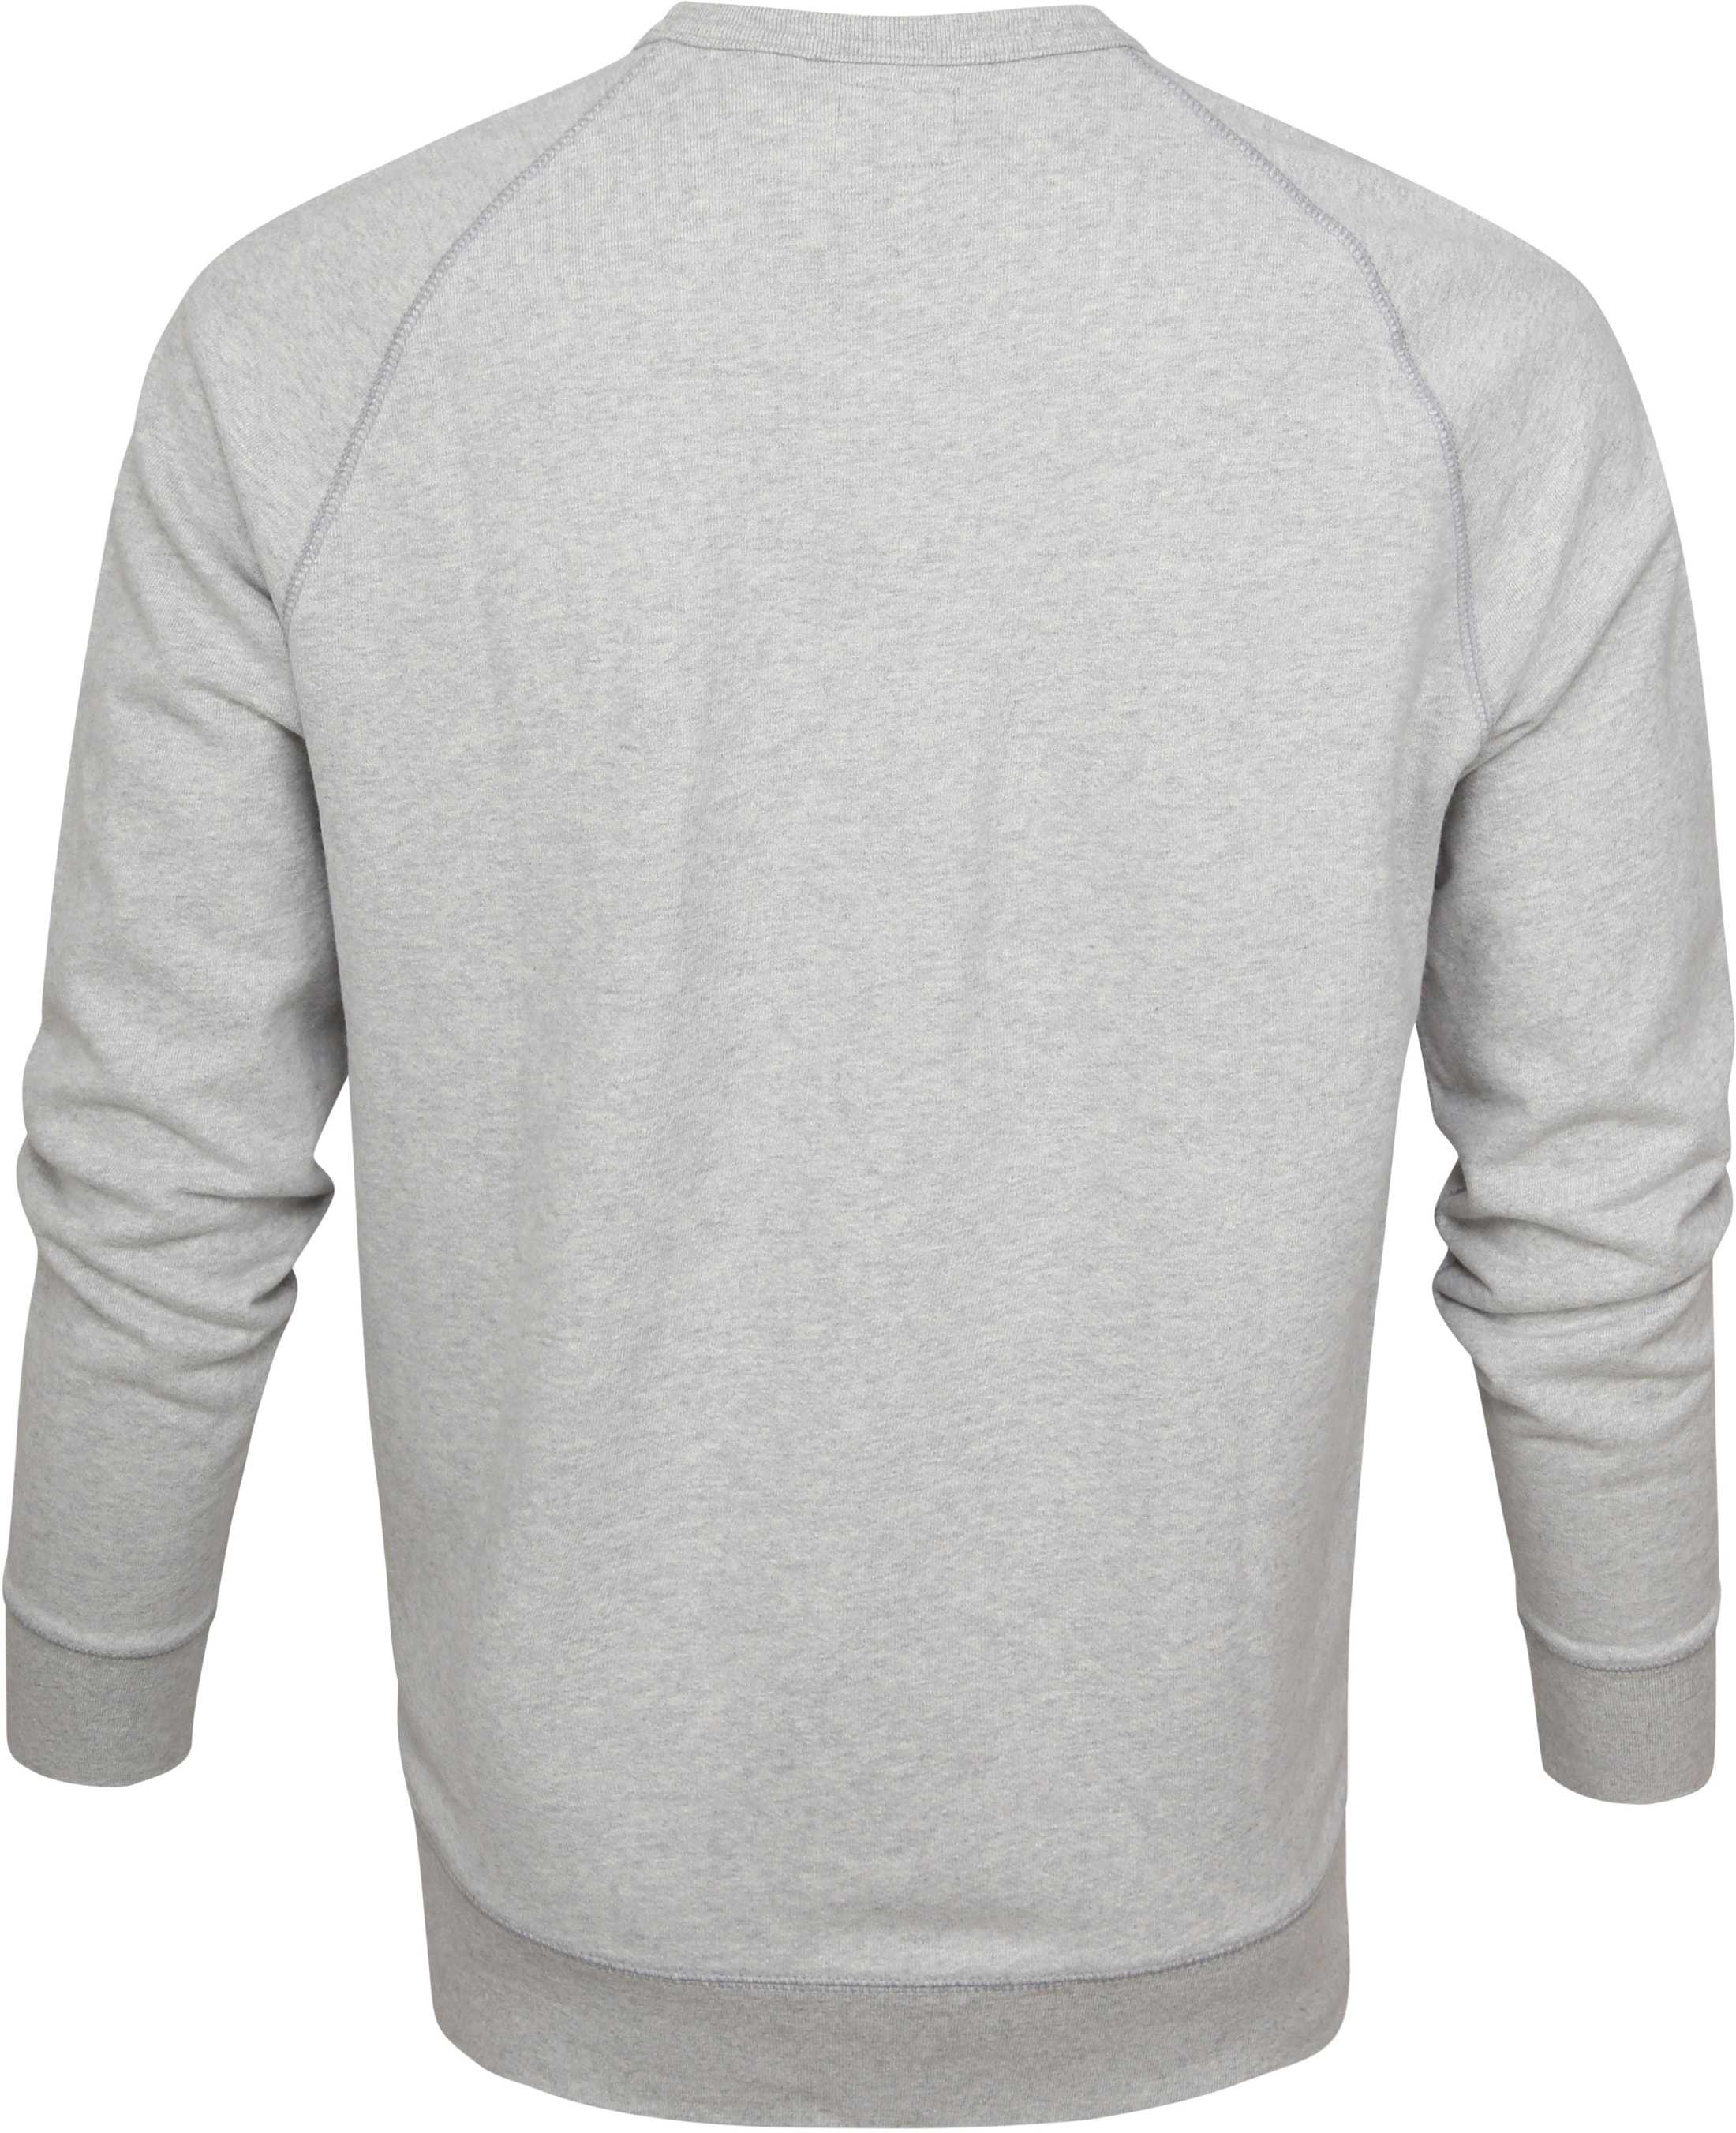 Levi's Original Sweater Grey photo 3